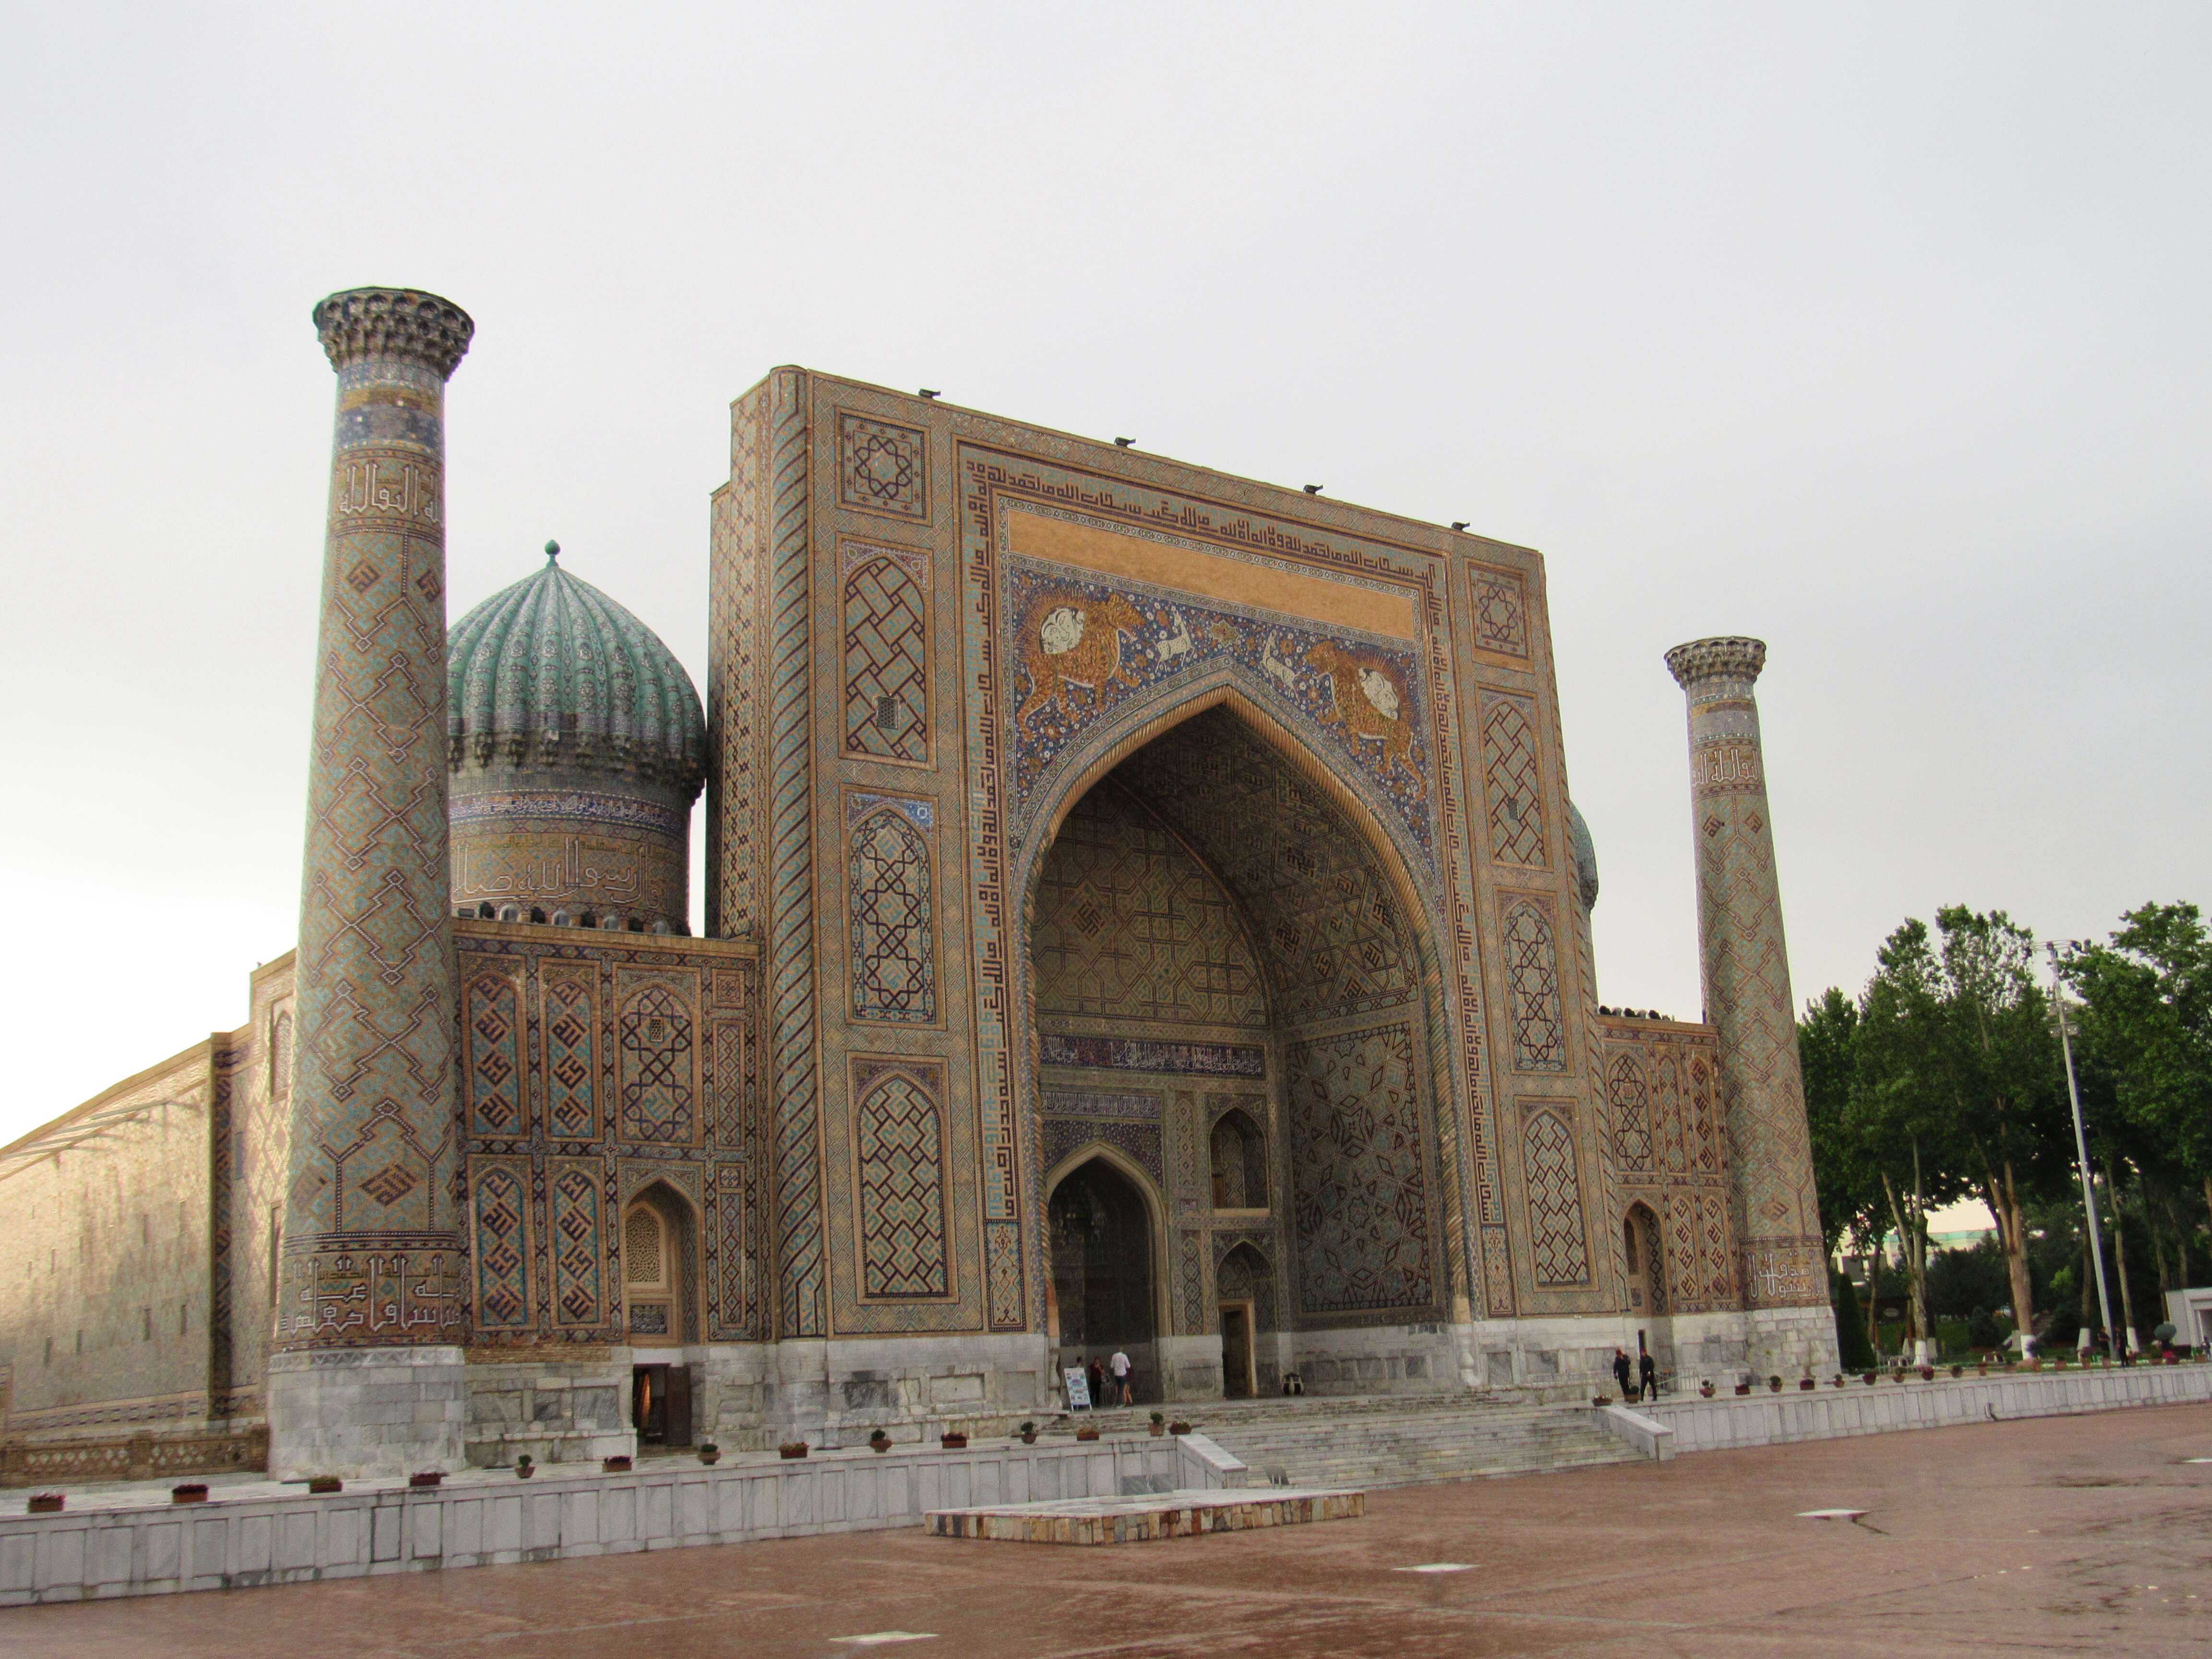 Ulugbek's Madrasa at the Registan